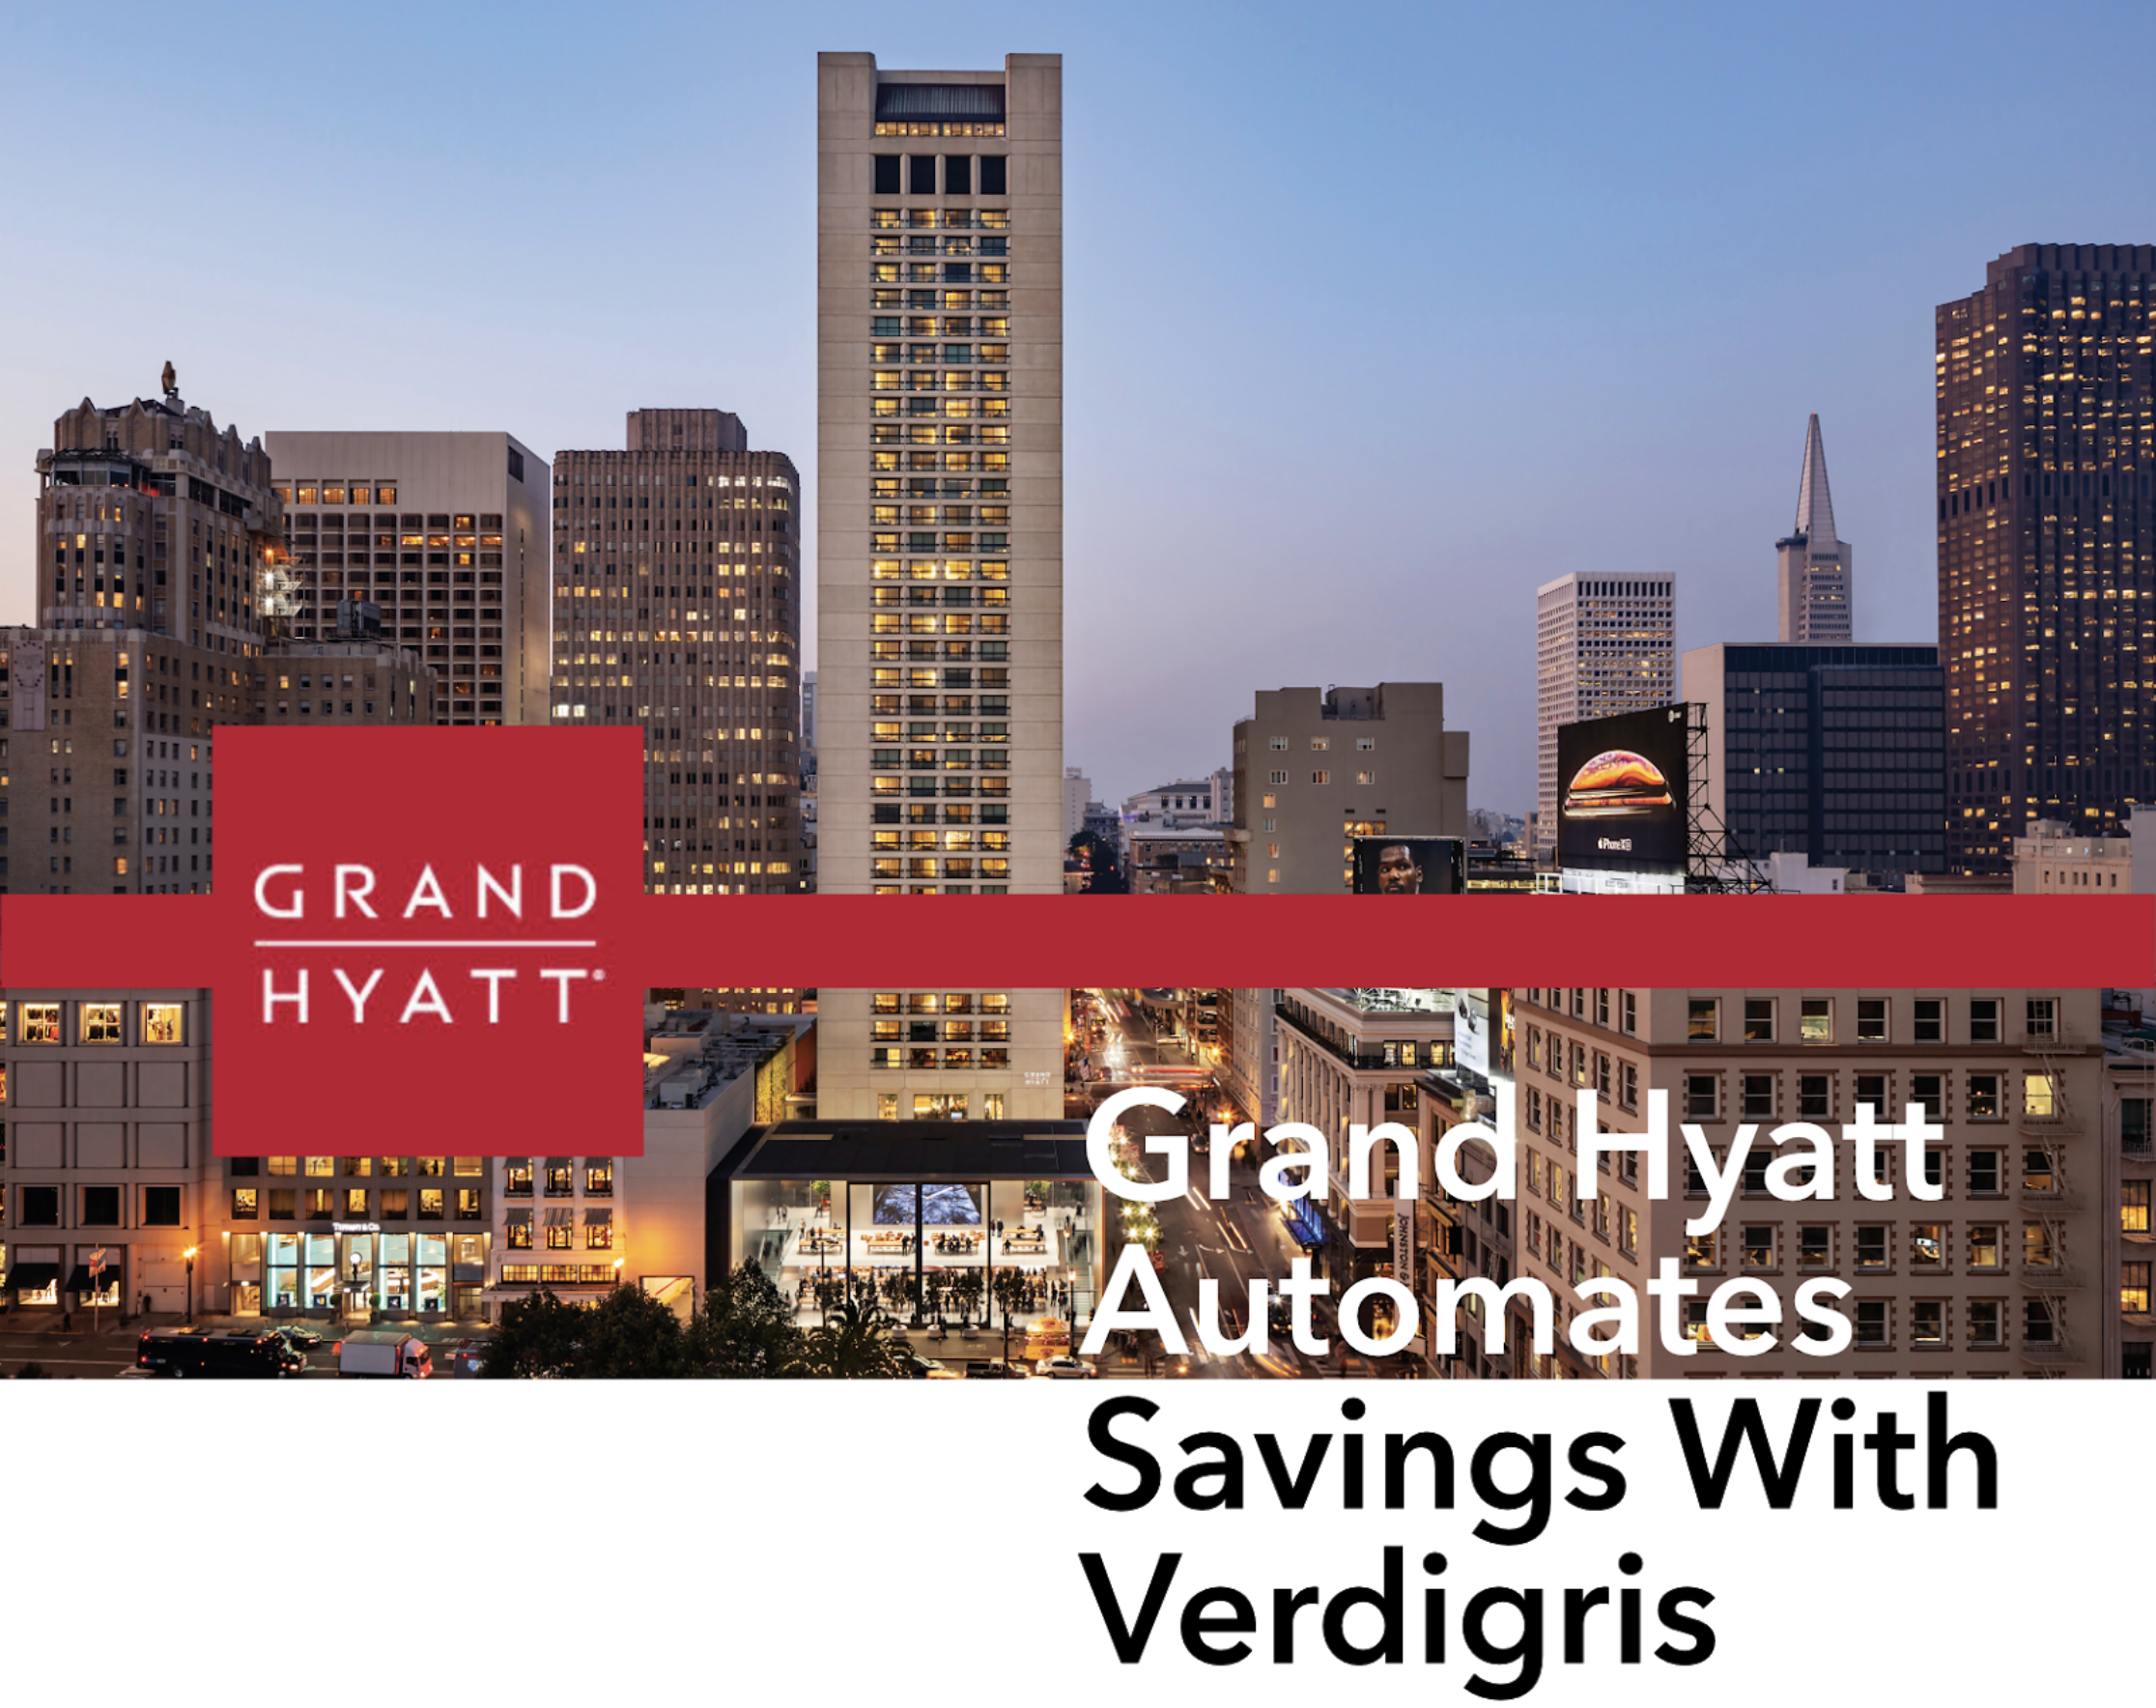 Grand Hyatt saves 20% with Adaptive Automation